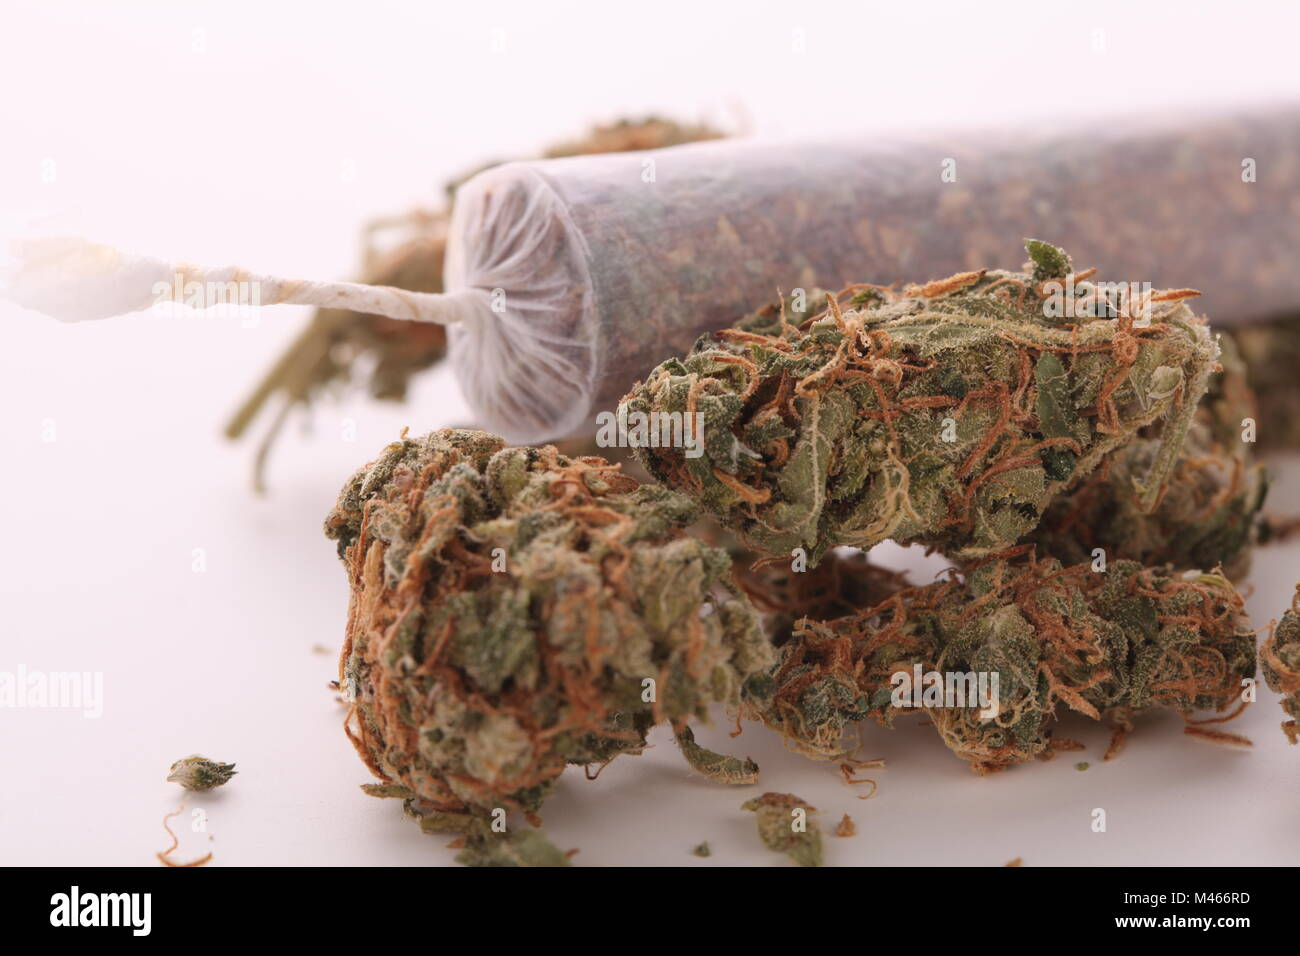 Close up of dried marijuana leaves and joint - Stock Image